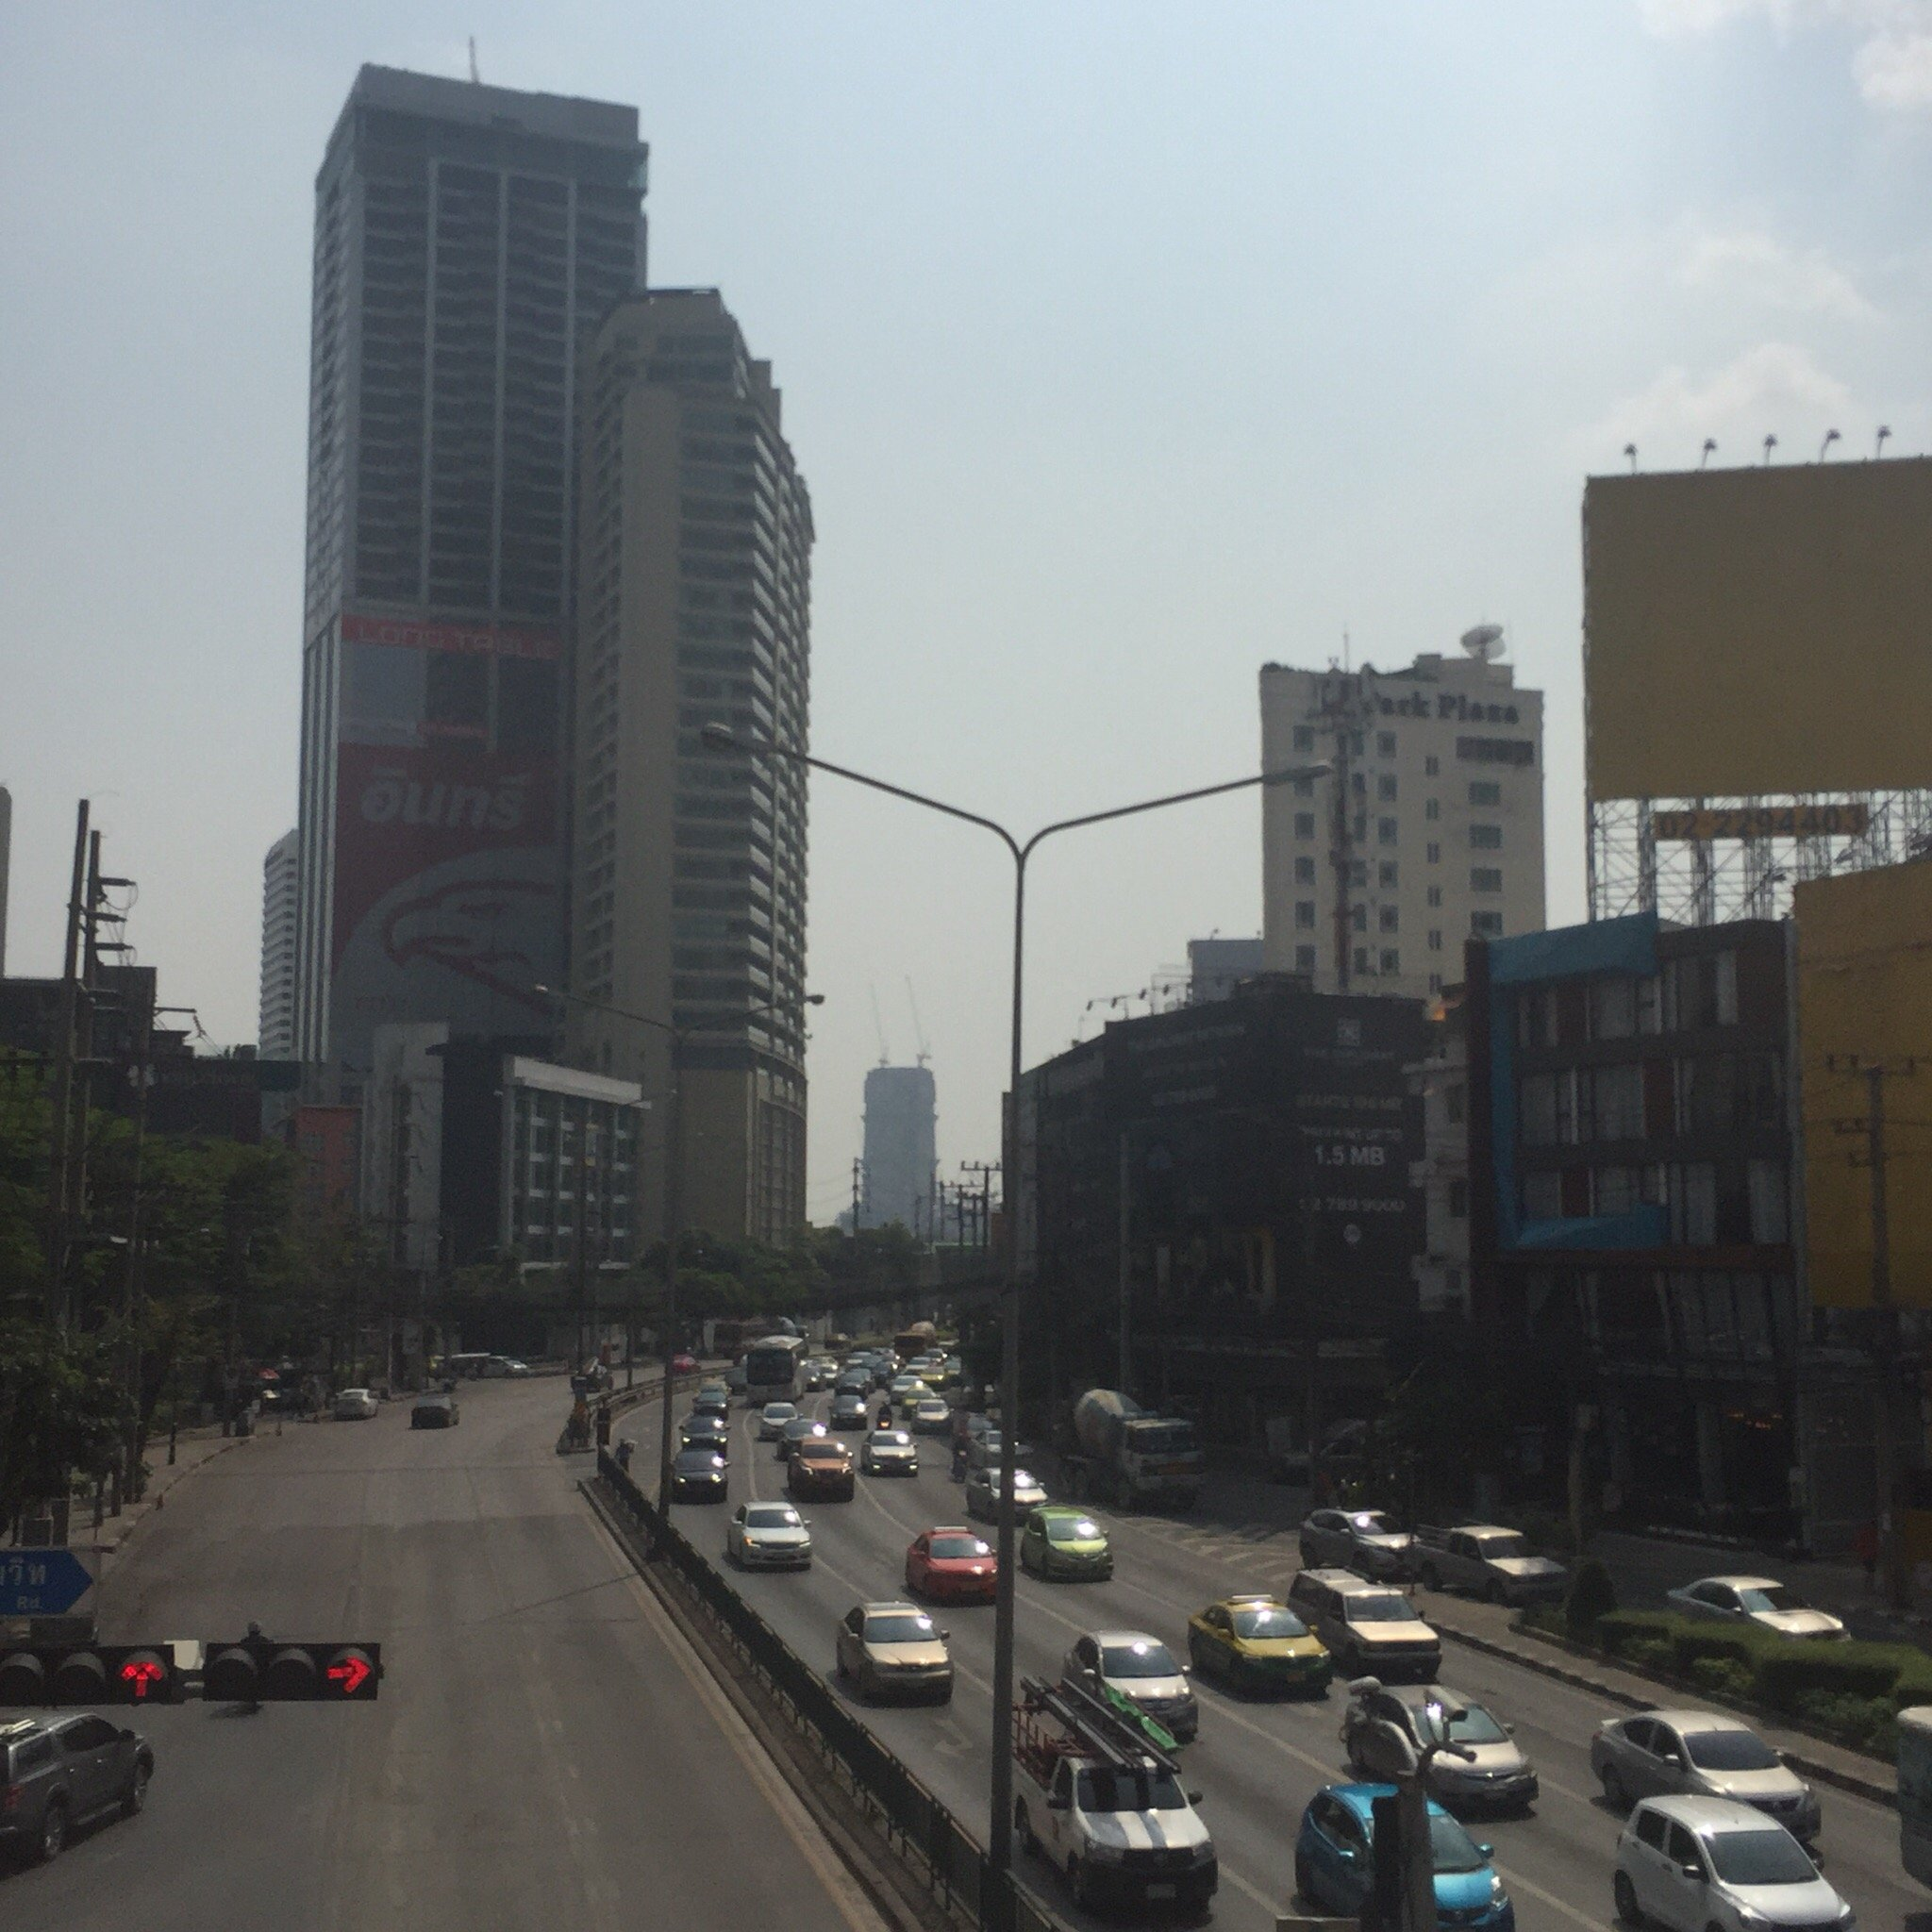 View of asoke area from overhead bridge